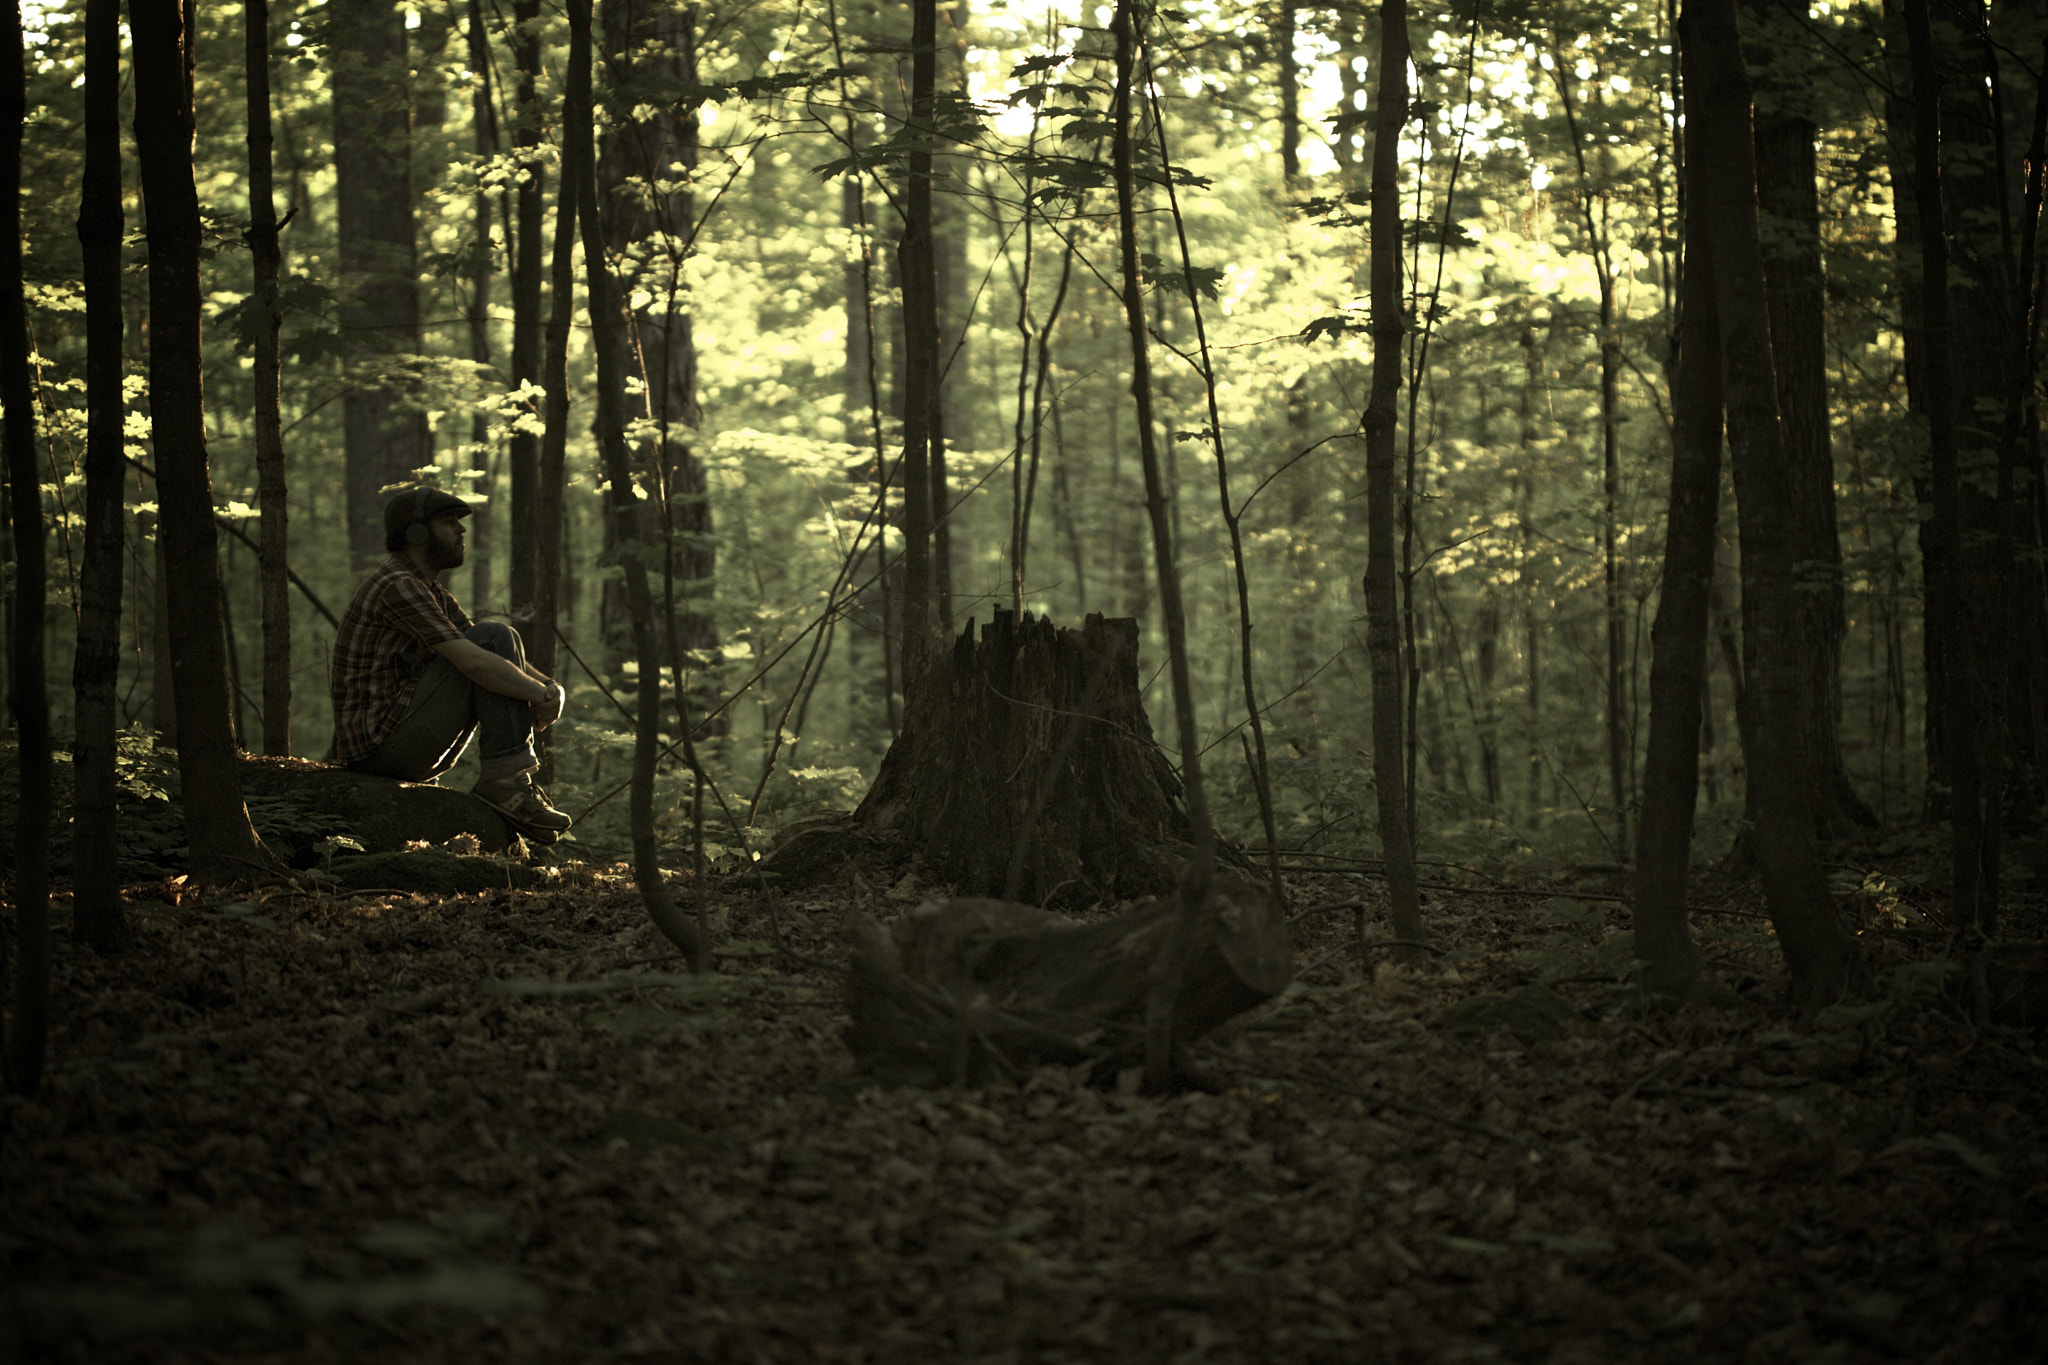 Photograph Waiting by Martin Reisch on 500px